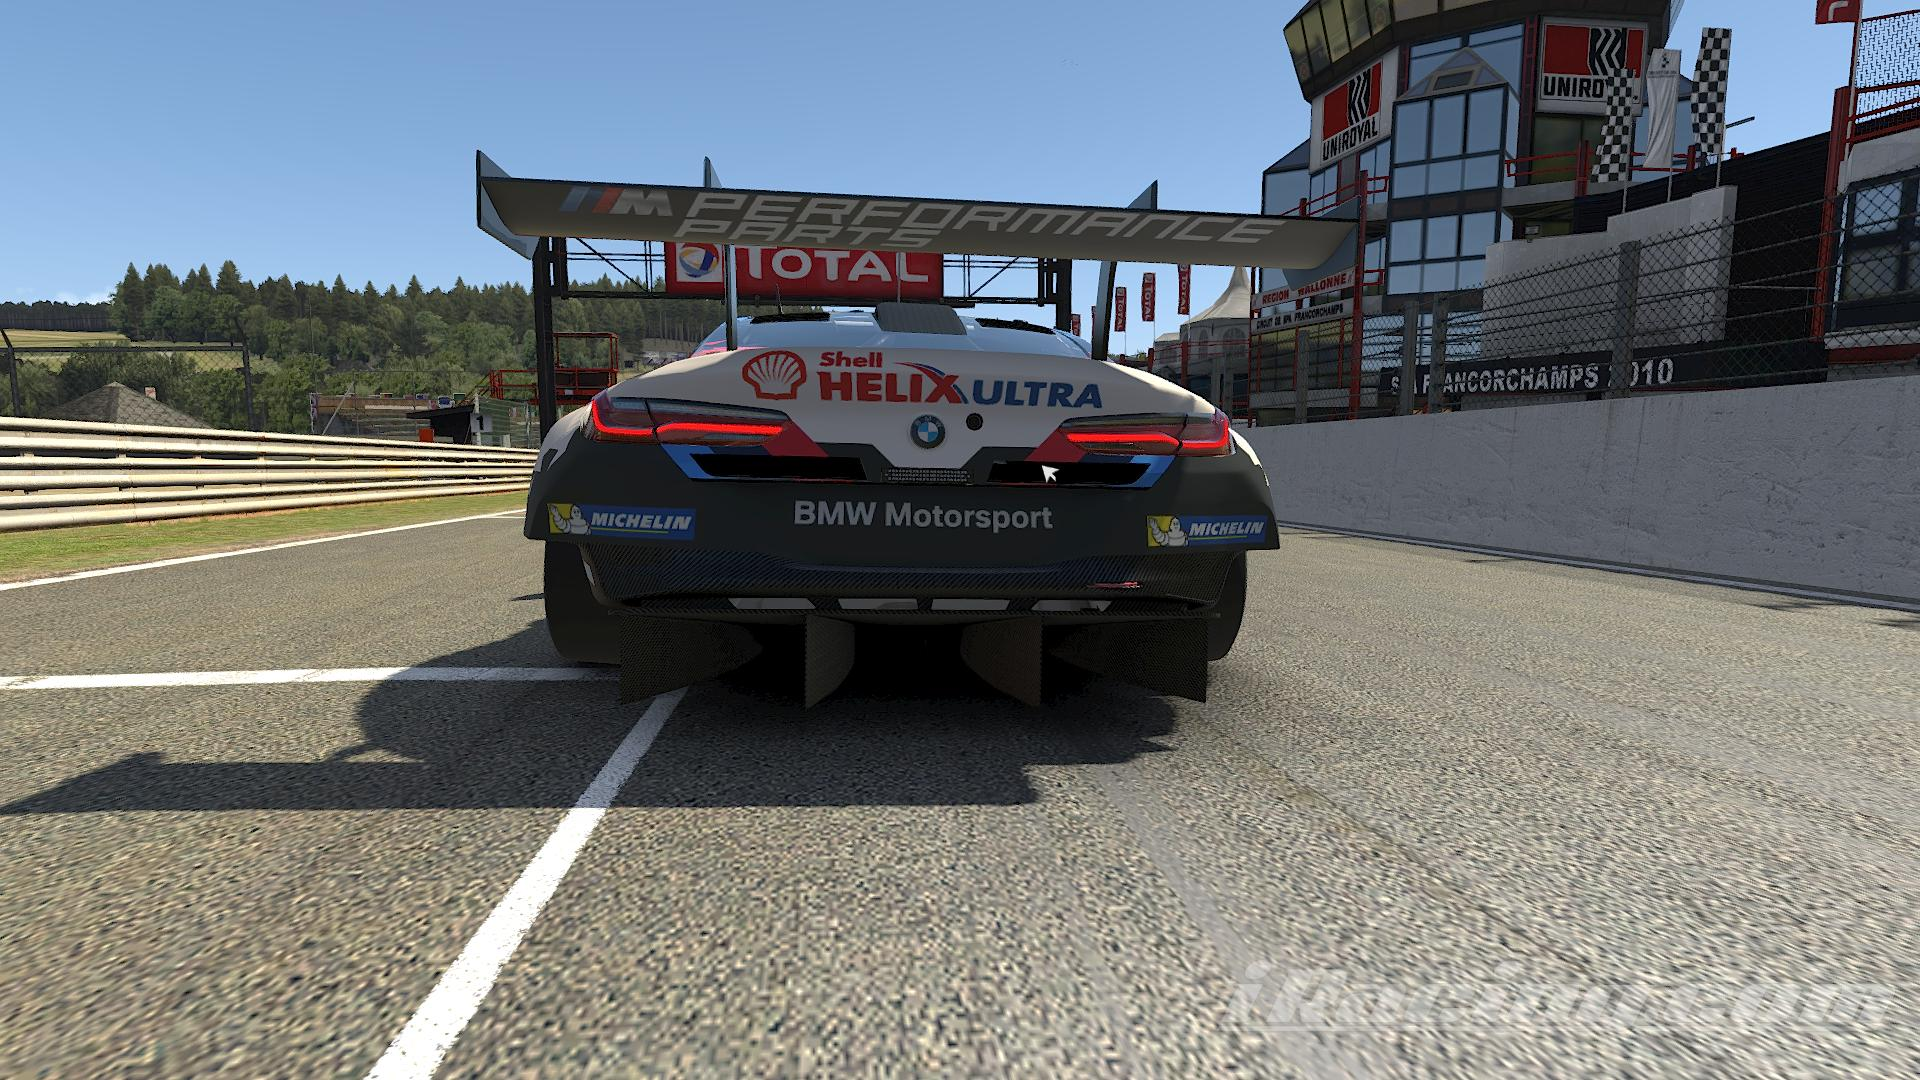 Preview of BMW M8 GTE - BMW Motorsport - Deconstructed by Graham Cremer